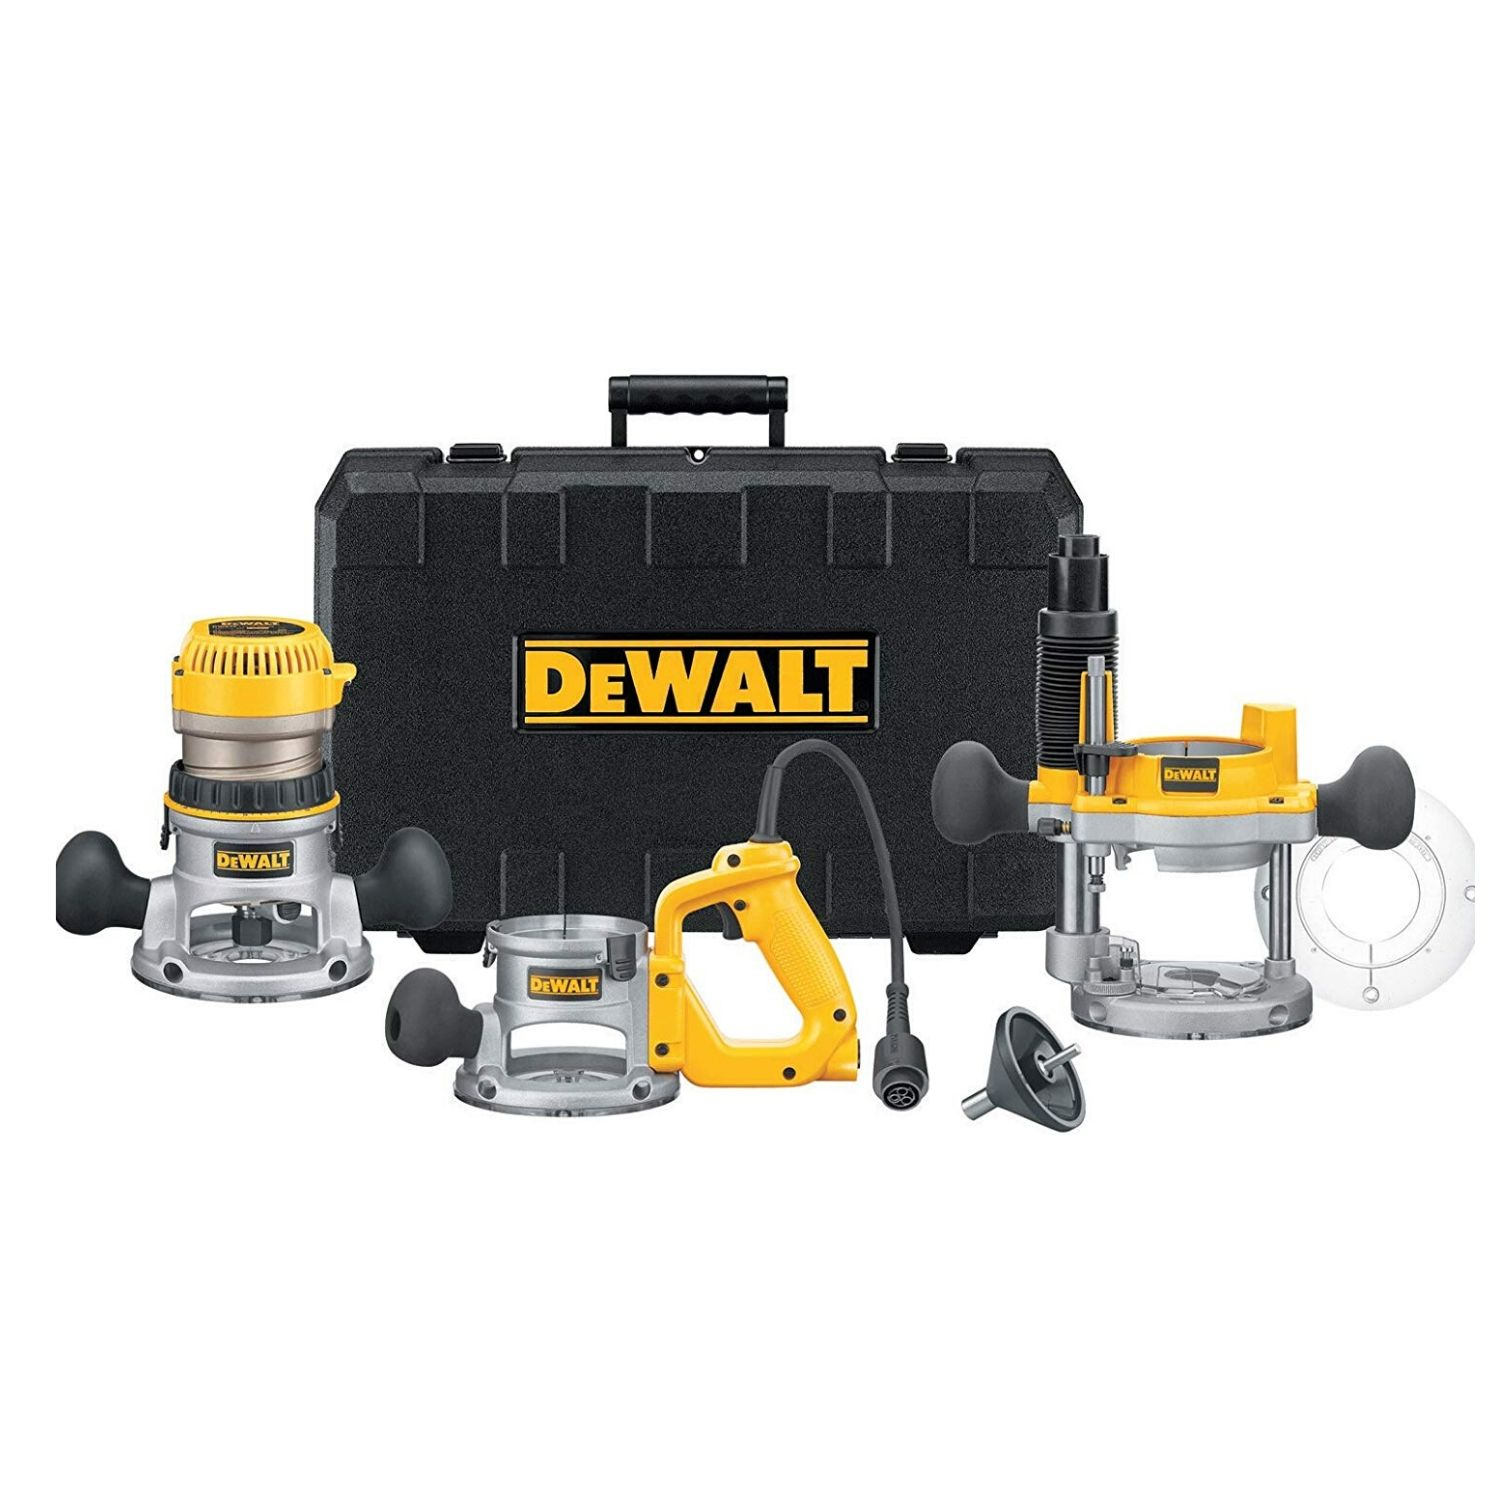 DEWALT DW618B3 12 Amp 2-1_4 Horsepower Plunge Base and Fixed Base